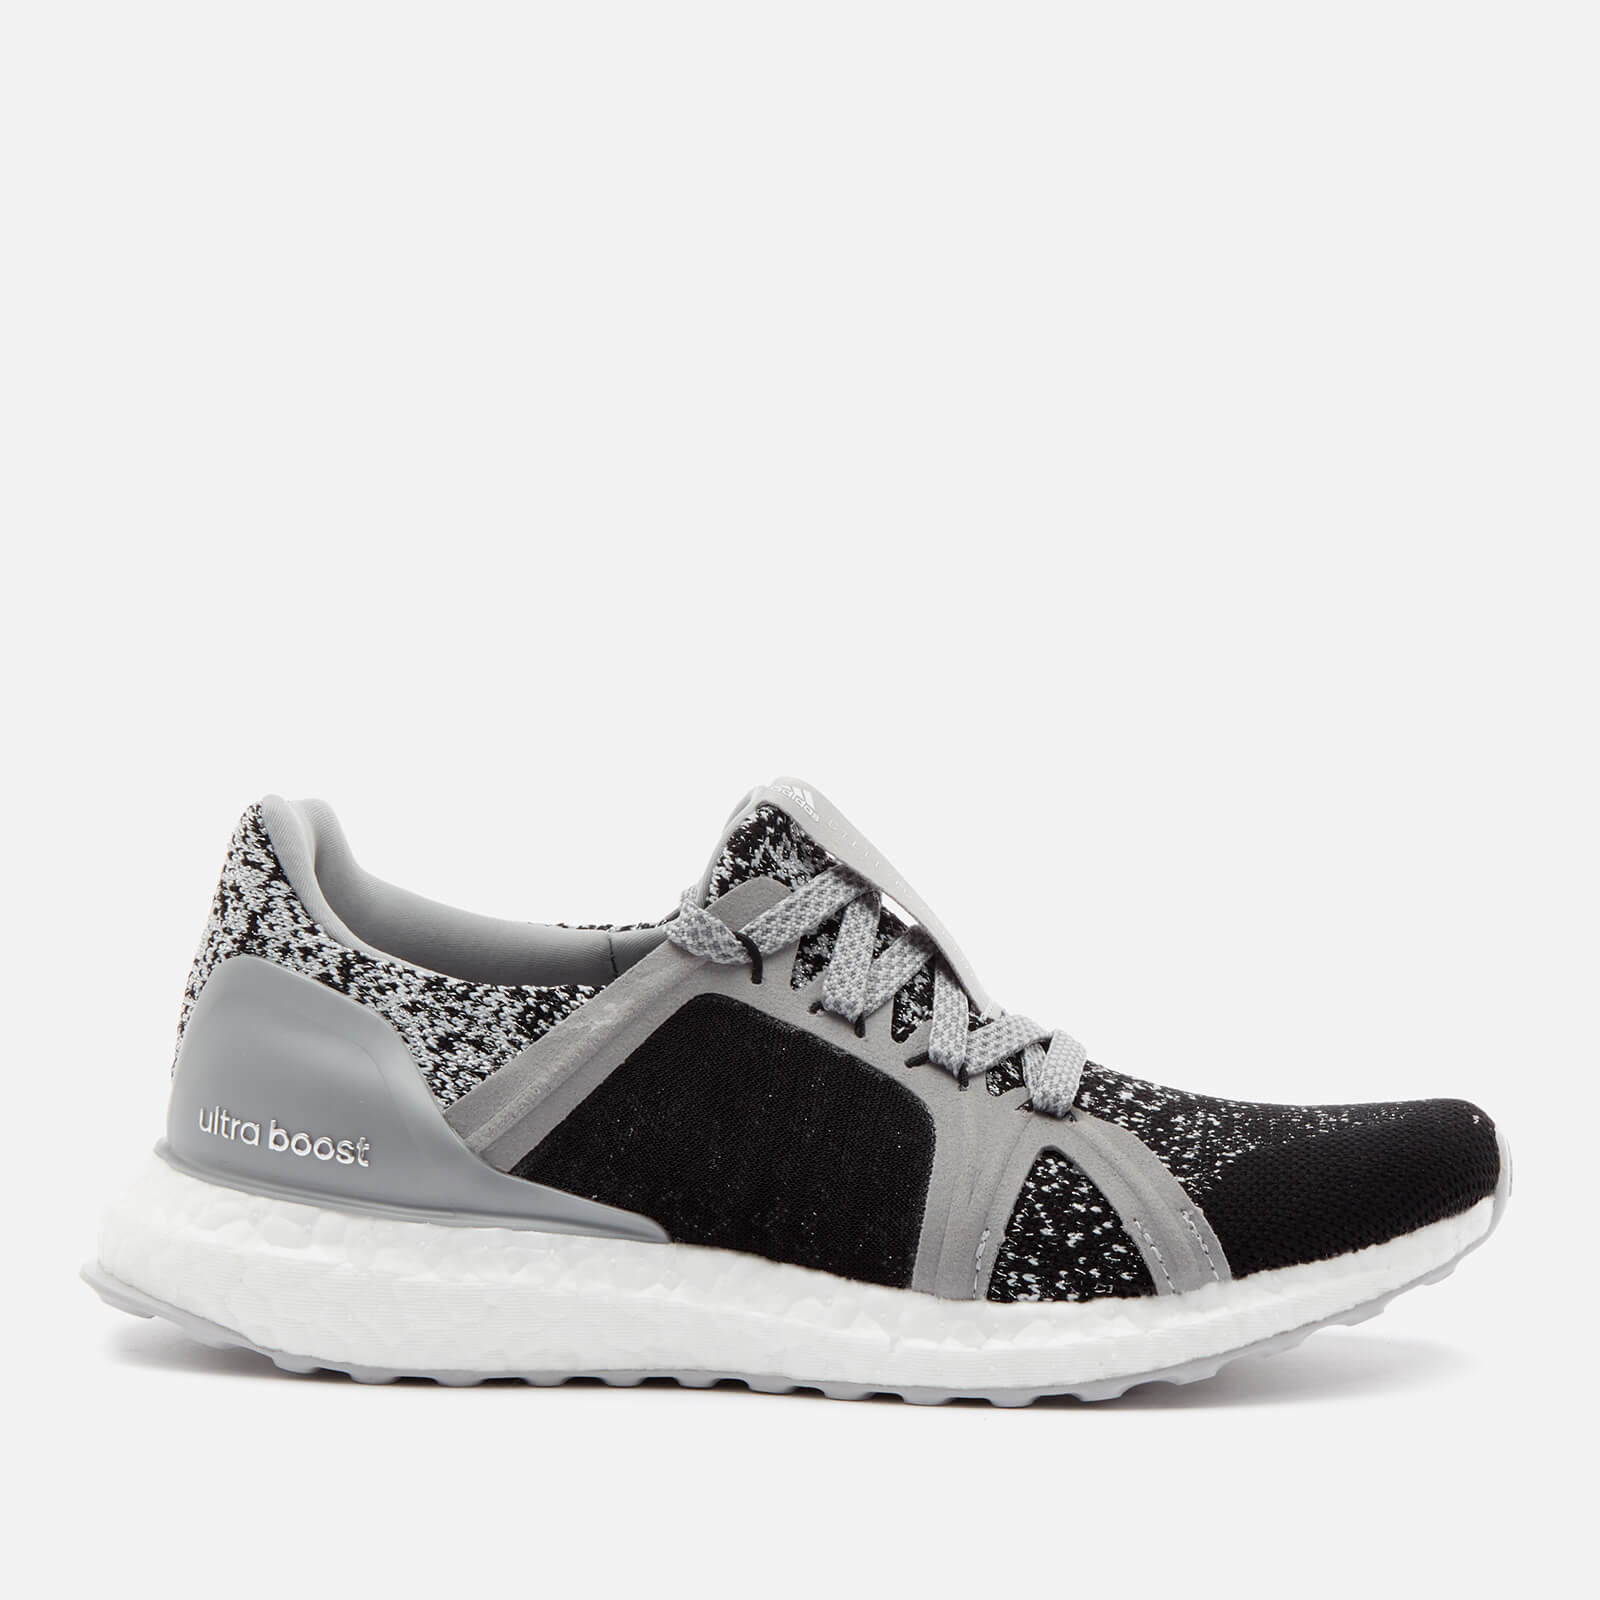 7c22610a03b adidas by Stella McCartney Women s Ultraboost X Trainers - Silver  Metallic Solid Grey Core Black - Free UK Delivery over £50